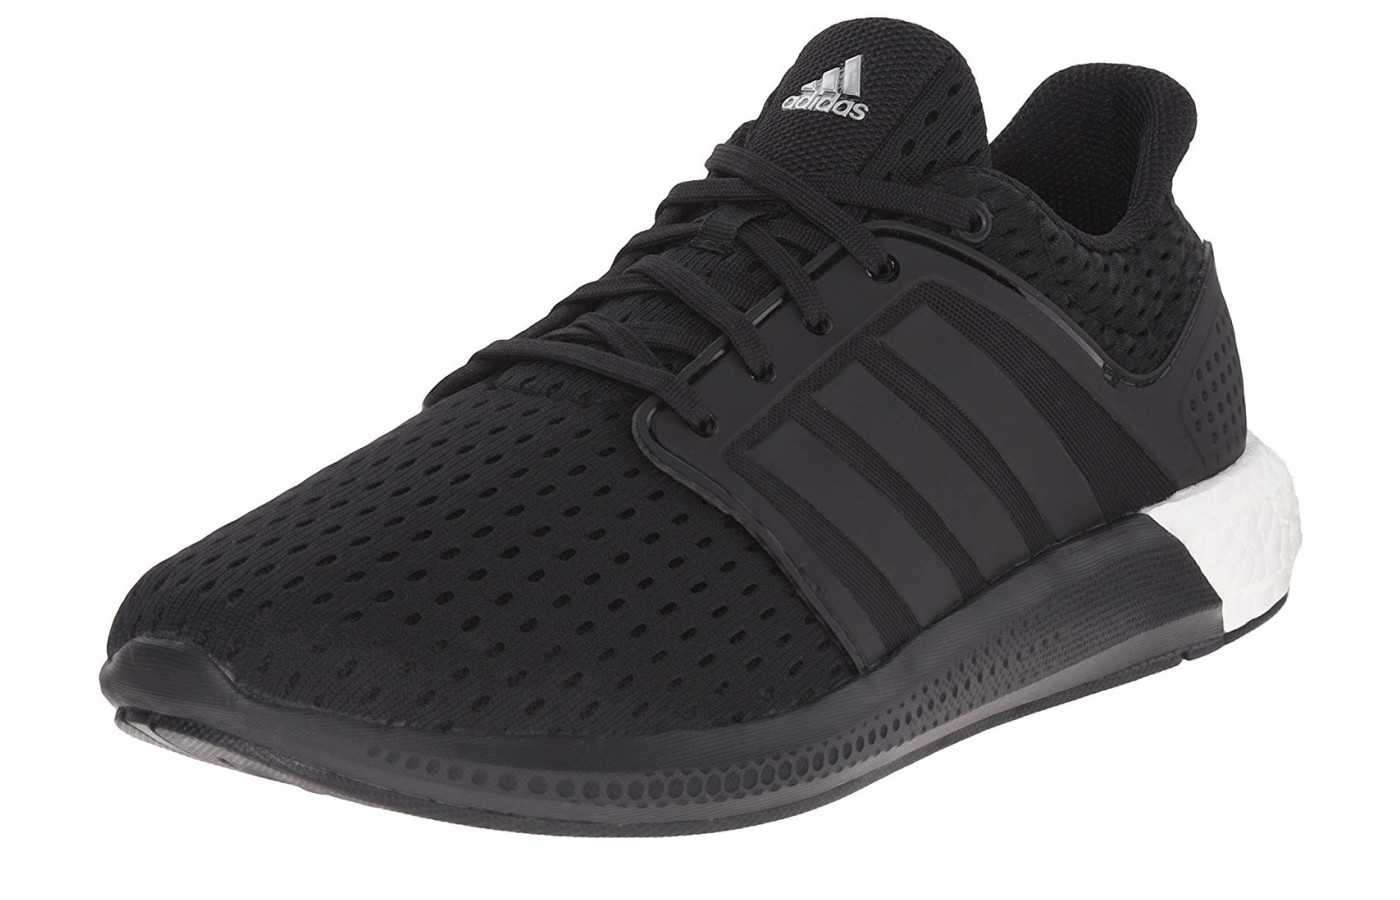 Adidas Solar Boost: To Buy or Not in